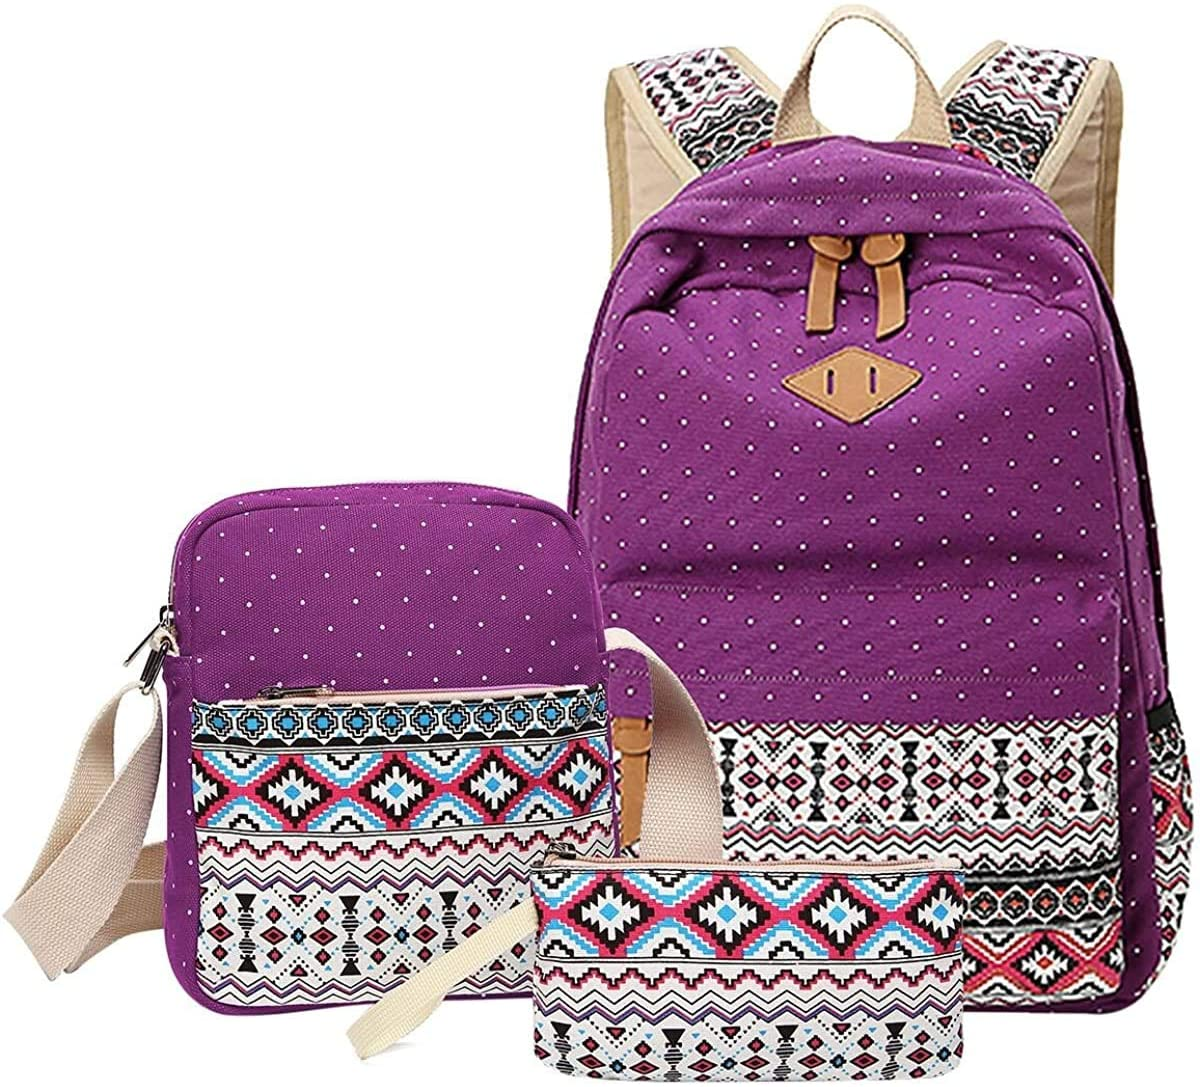 SQINAA School Backpack Canvas Bookbag with Shoulder Bag and Pencil Case for Girls Multifunctional Practical Backpack,Purple